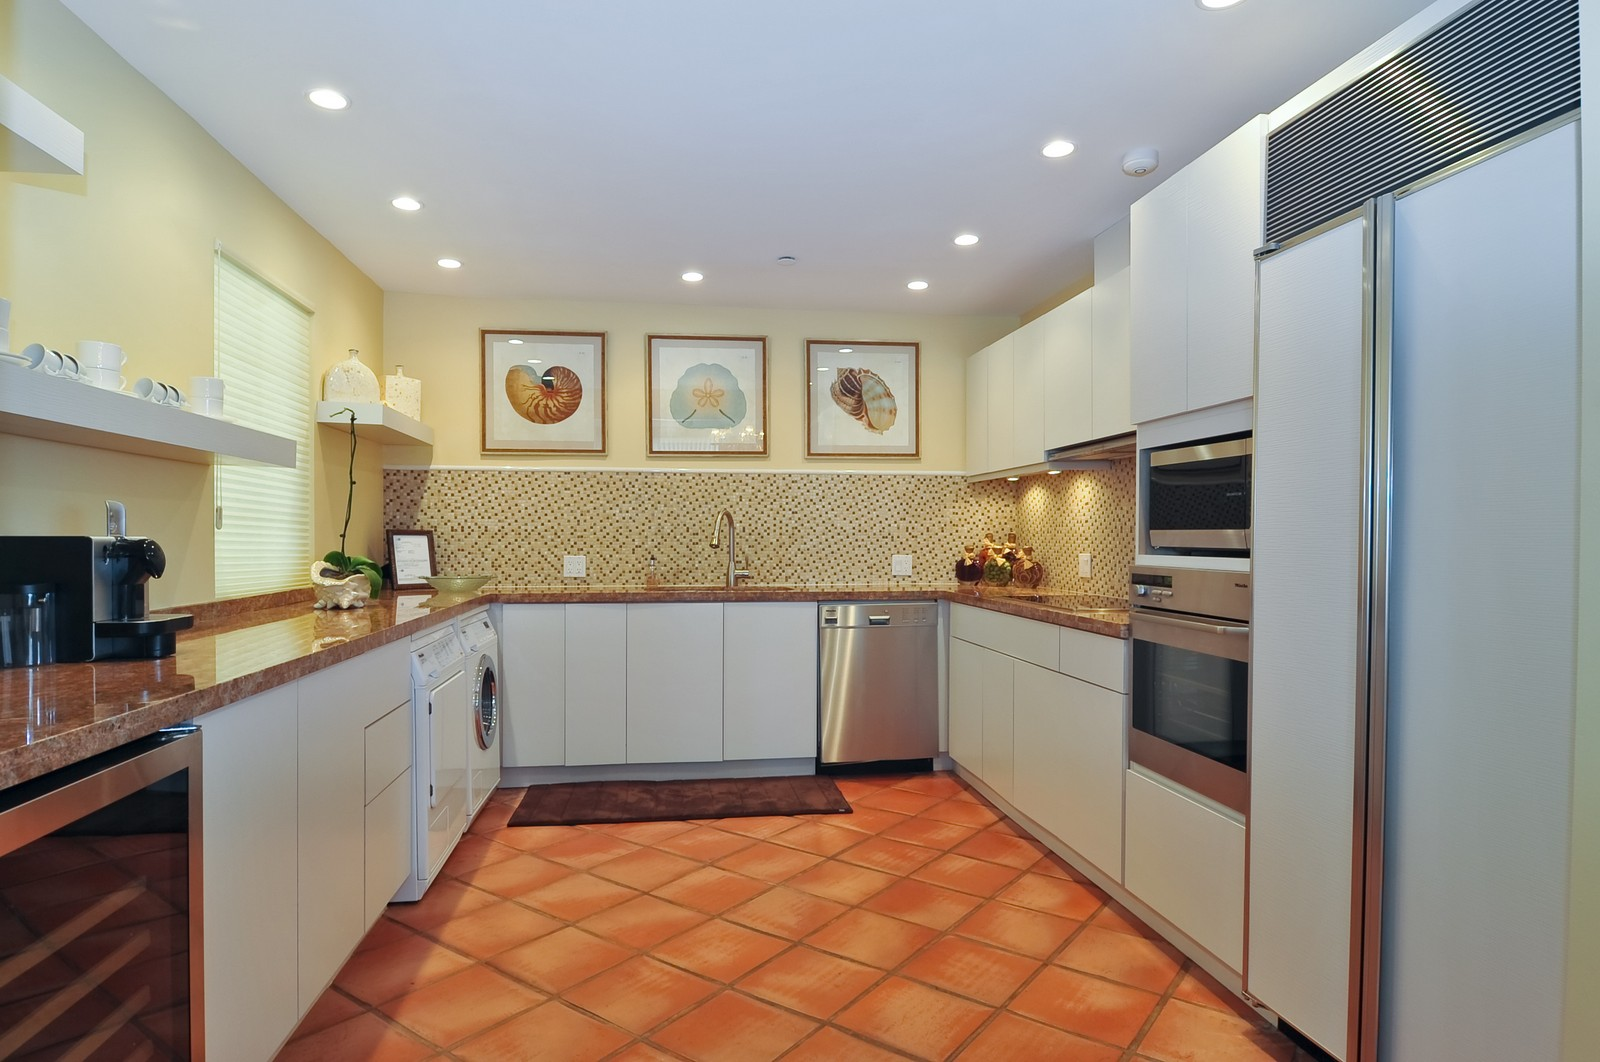 Real Estate Photography - 15312 Fisher Island Dr, Fisher Island, FL, 33109 - Kitchen